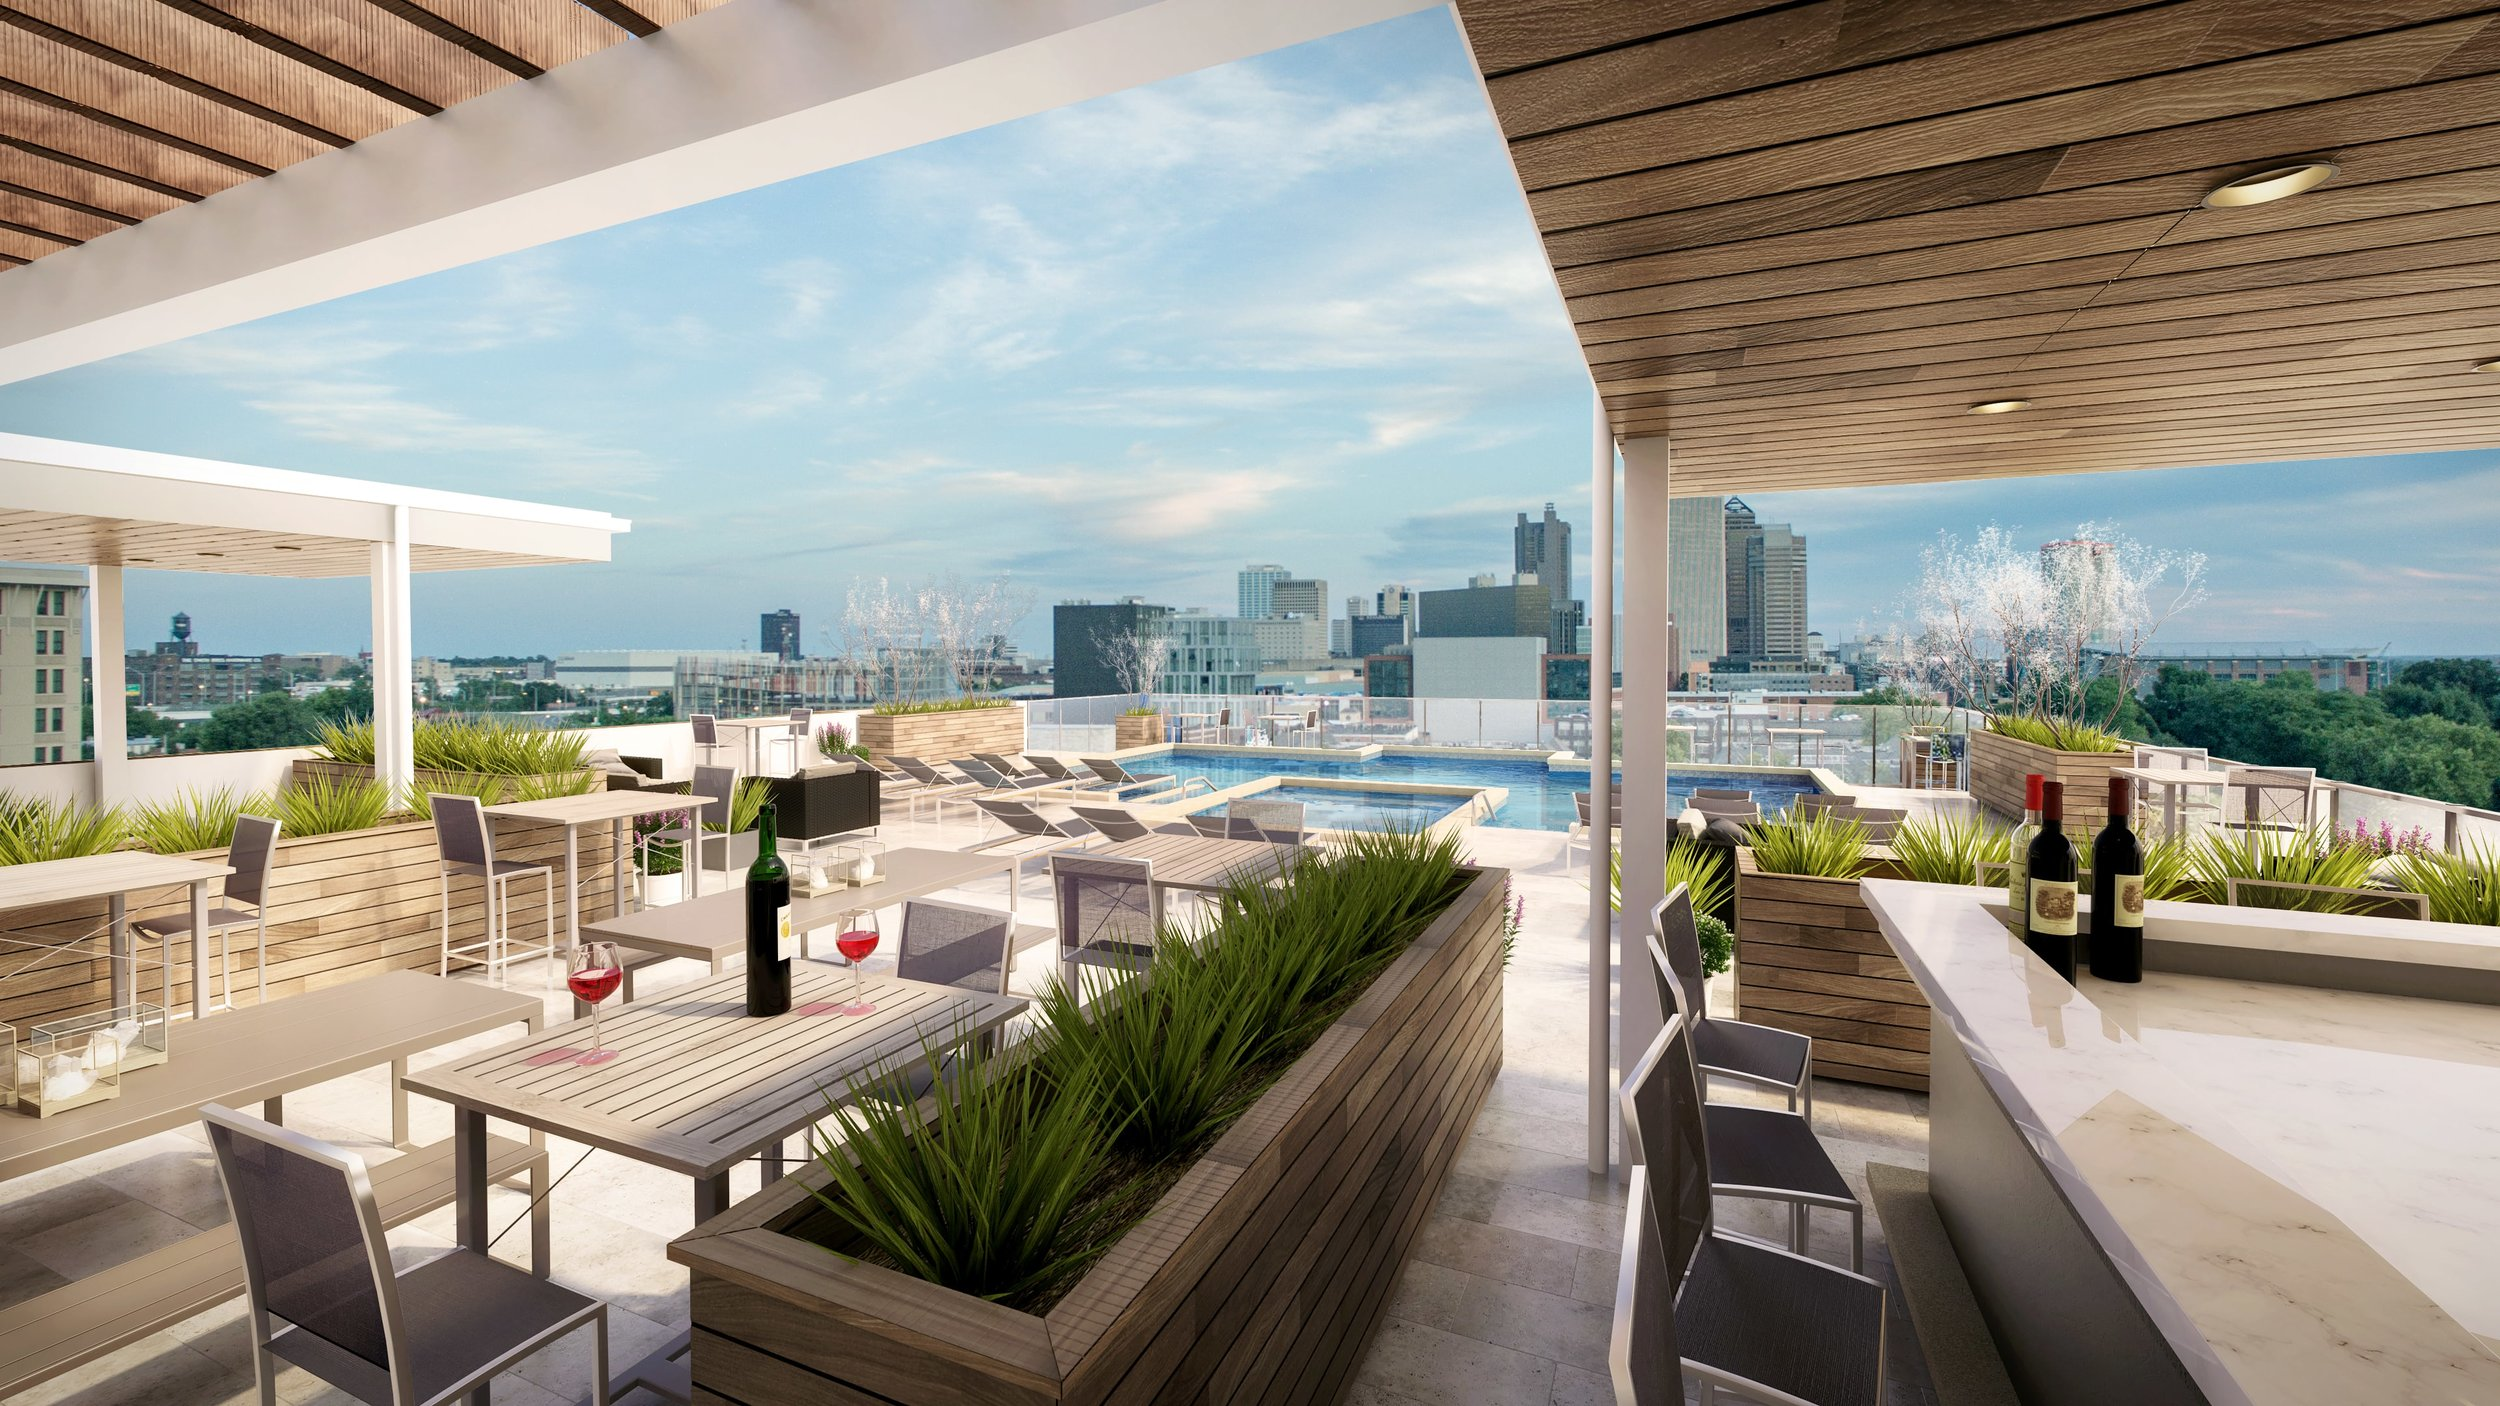 Hubbard_Park_Place_Short_North_Apartment_Office_Pool_Garage_Rooftop_Bar_Lounge